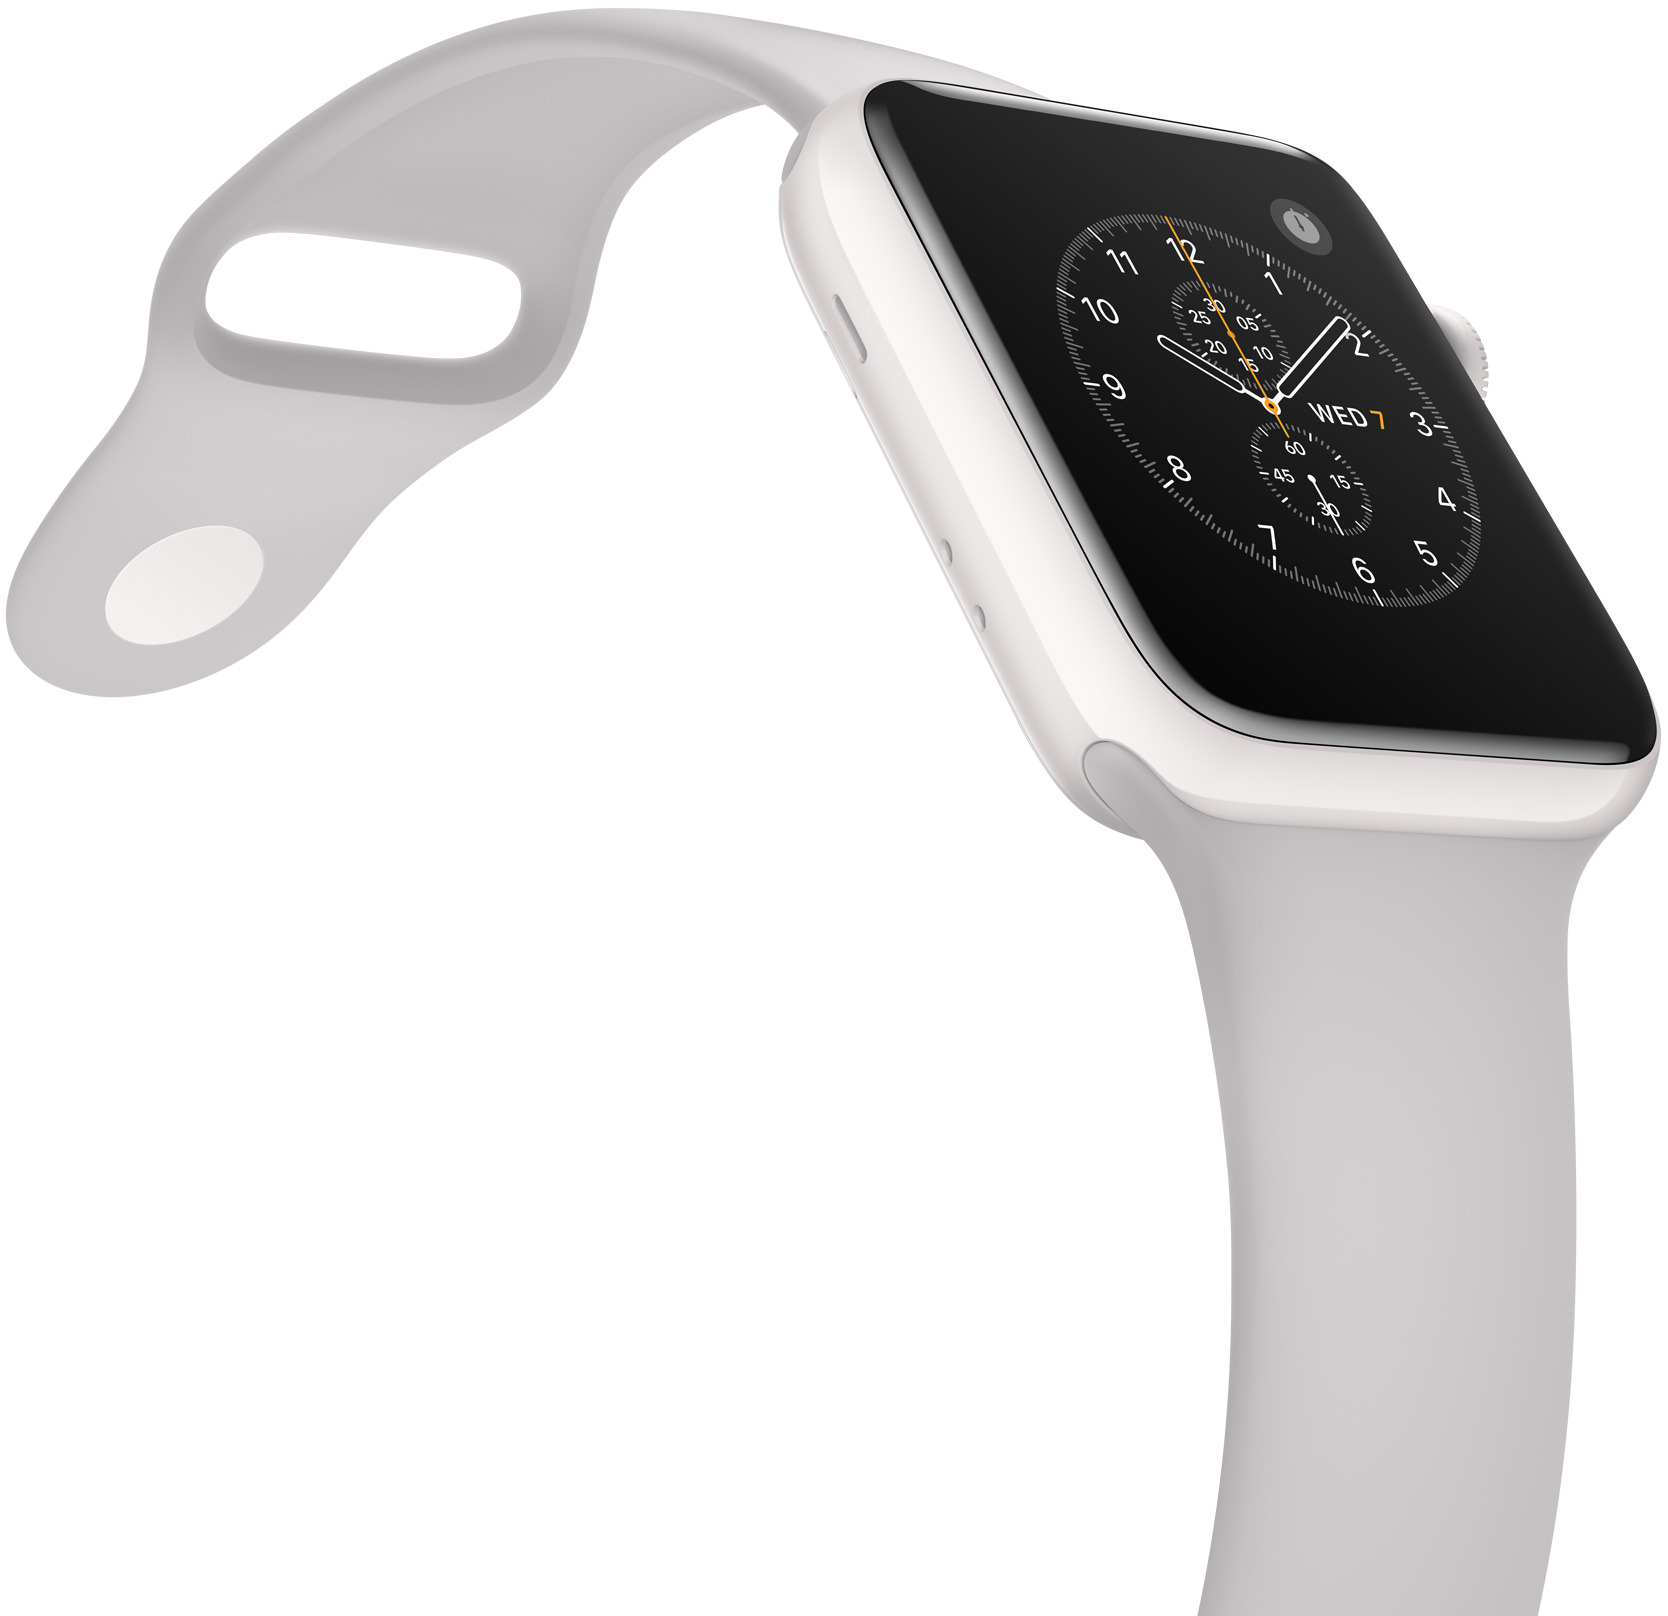 Apple Watch Series 2 Edition Ceramic image 001